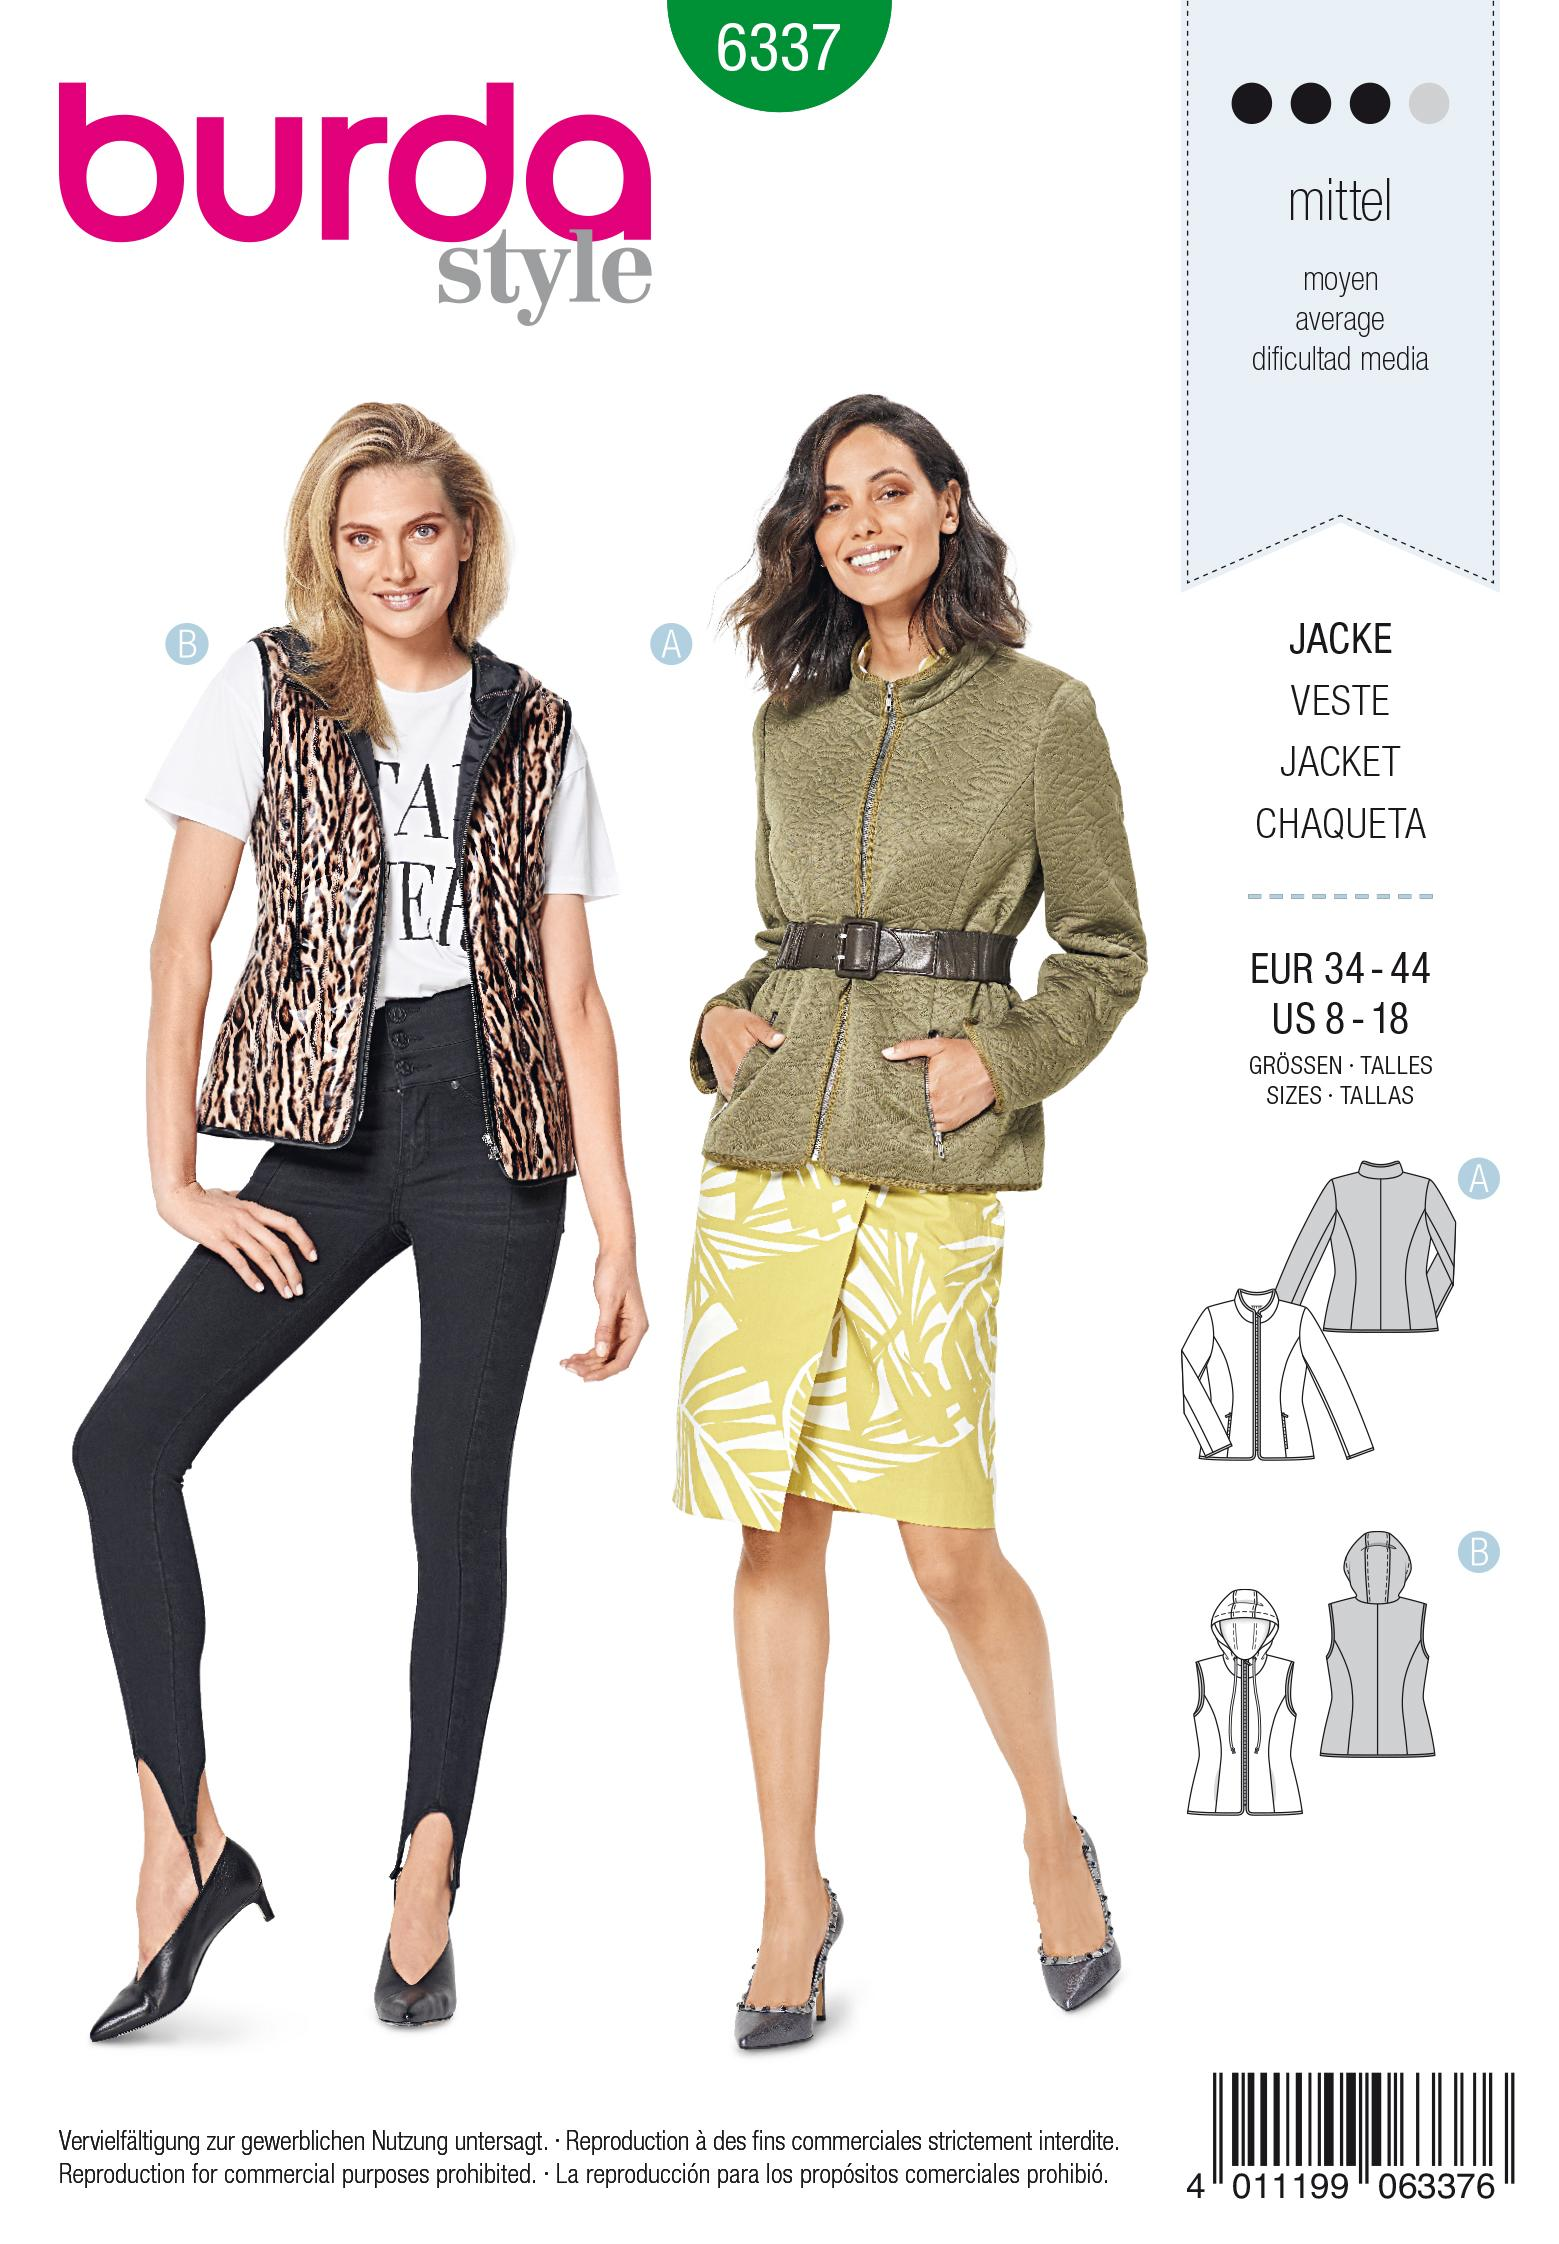 Burda 6337 Misses' quilted jacket